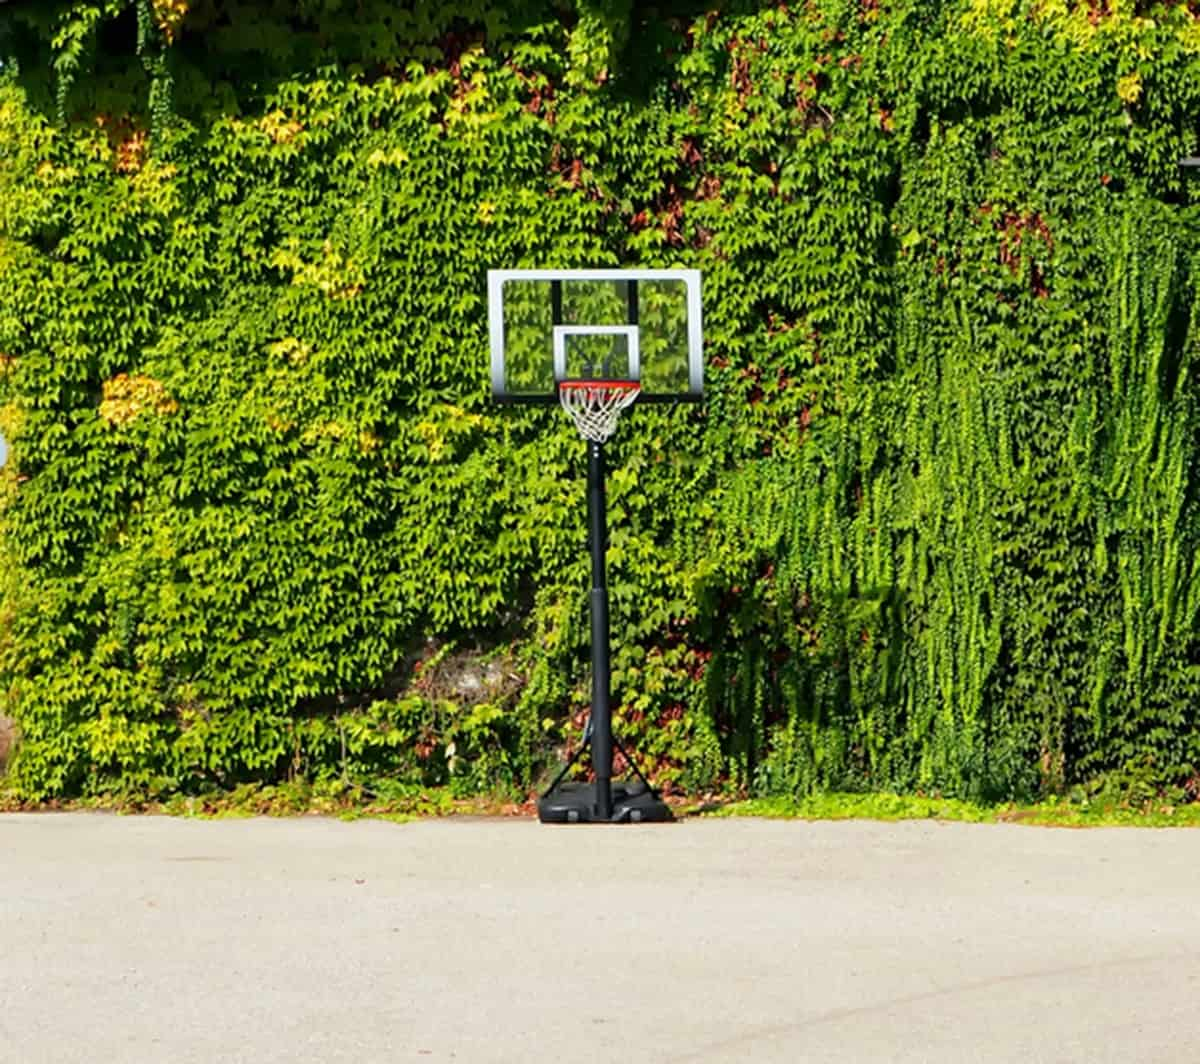 10 Pro Portable Basketball Hoops To Keep You Dunking In 2021